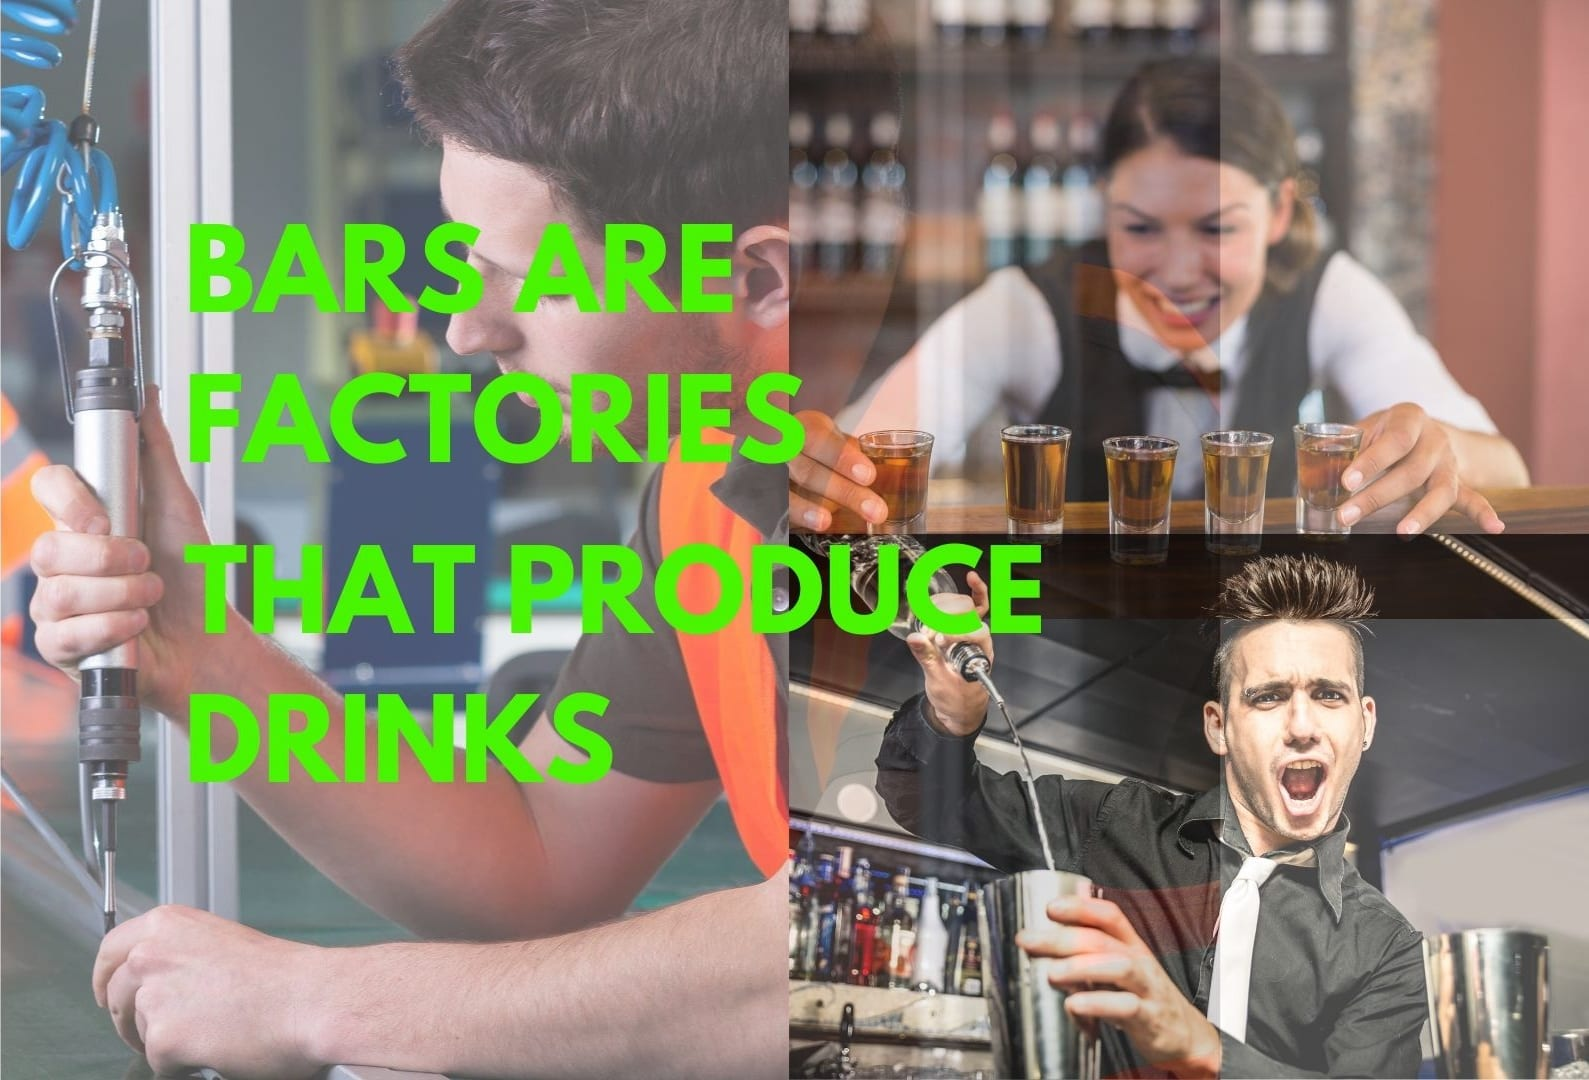 BARS-ARE-FACTORIES-THAT-PRODUCE-DRINKS-TN